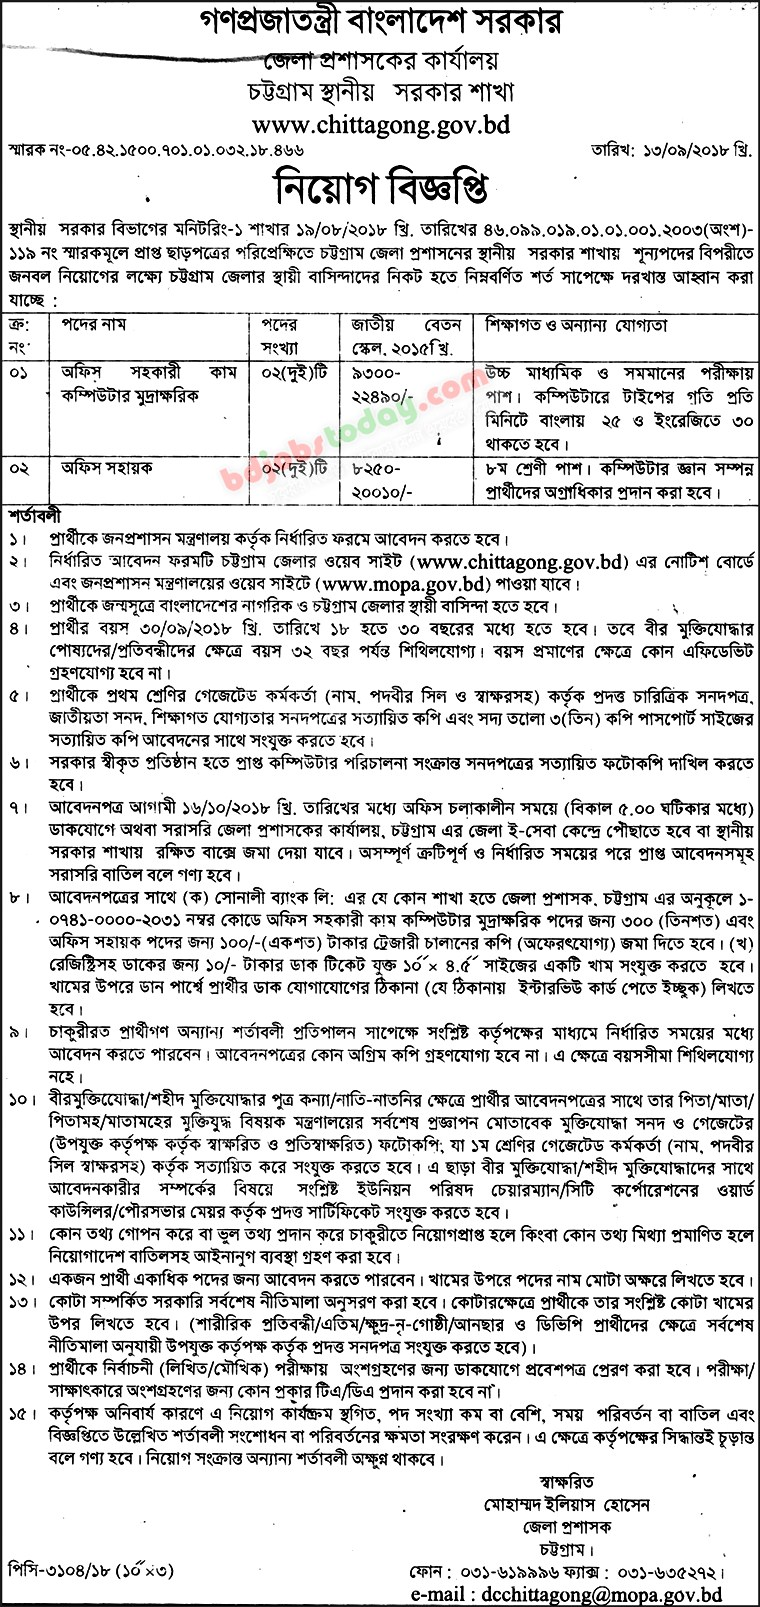 Office of District Commissioner, Chittagong jobs